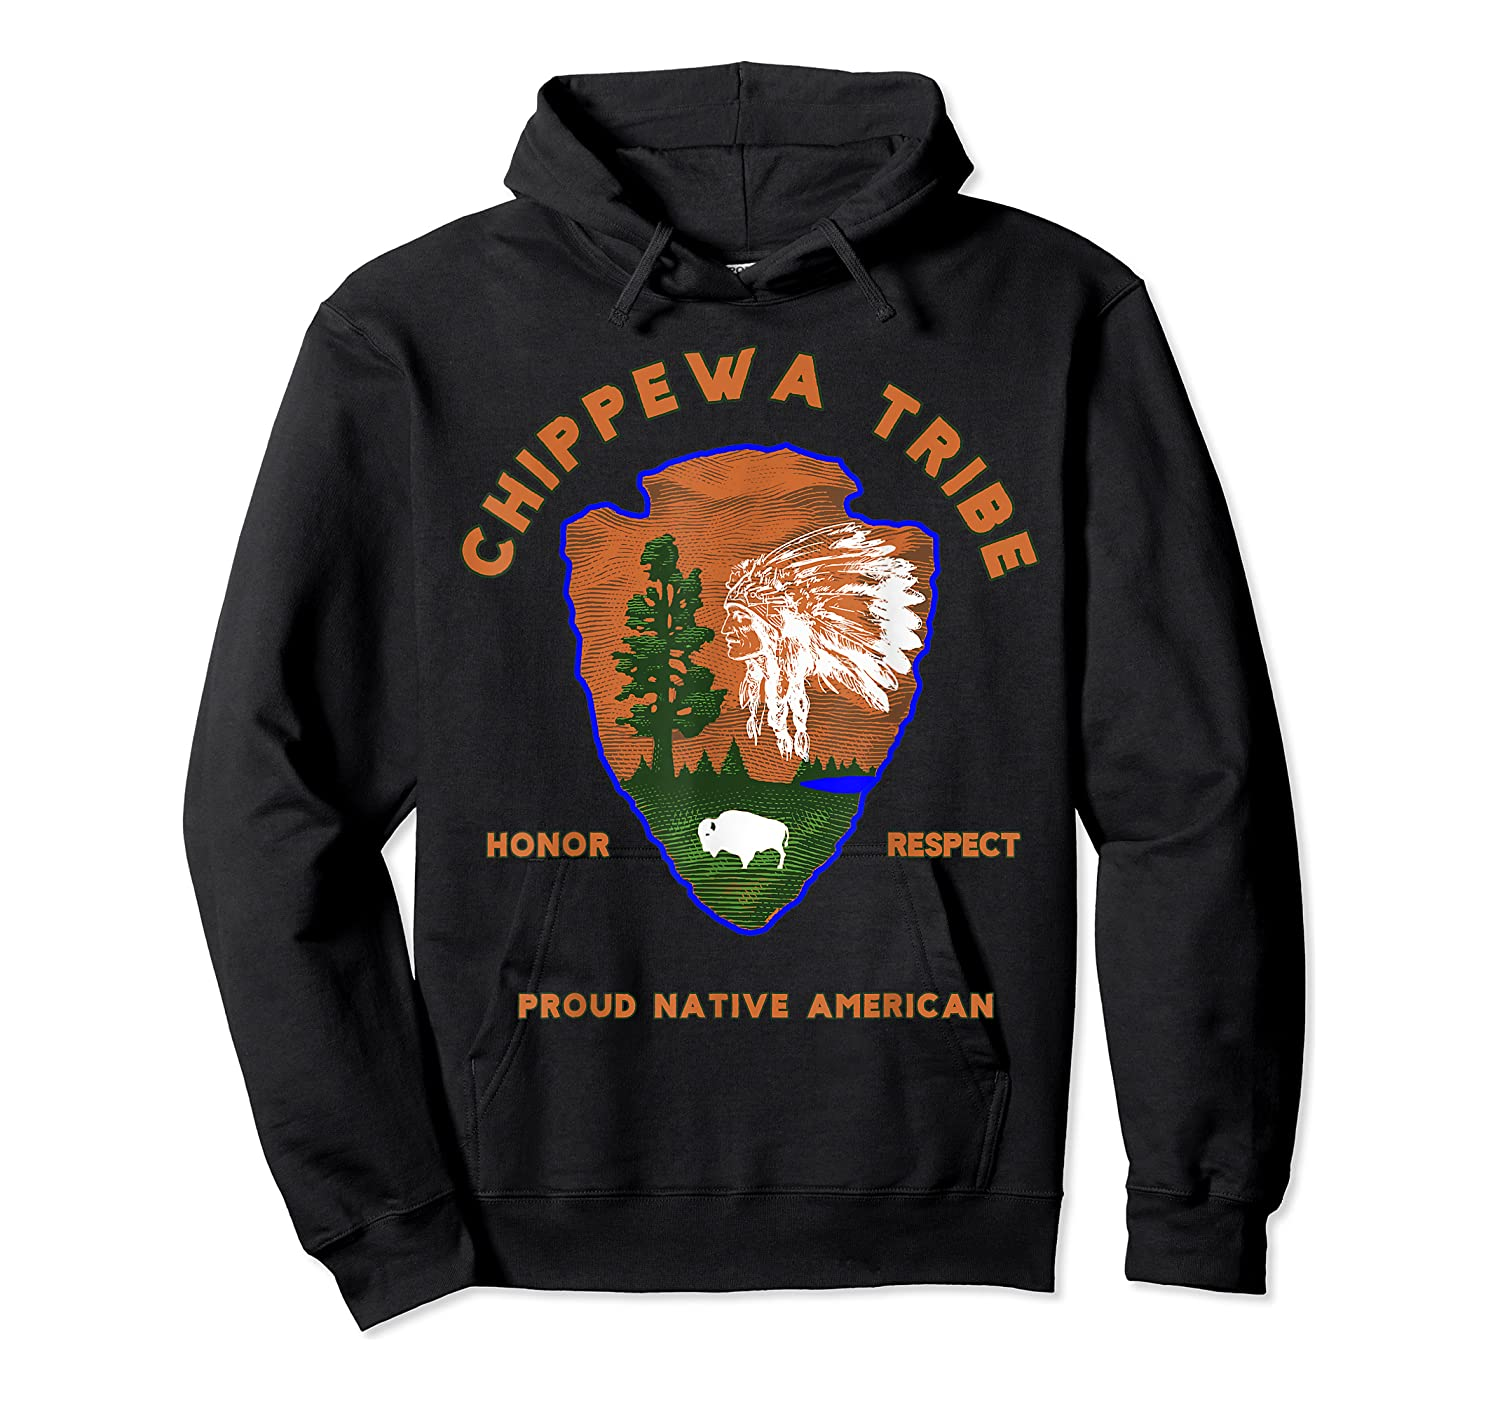 Chippewa Tribe Native American Indian Pride Respect Honor T-shirt Unisex Pullover Hoodie